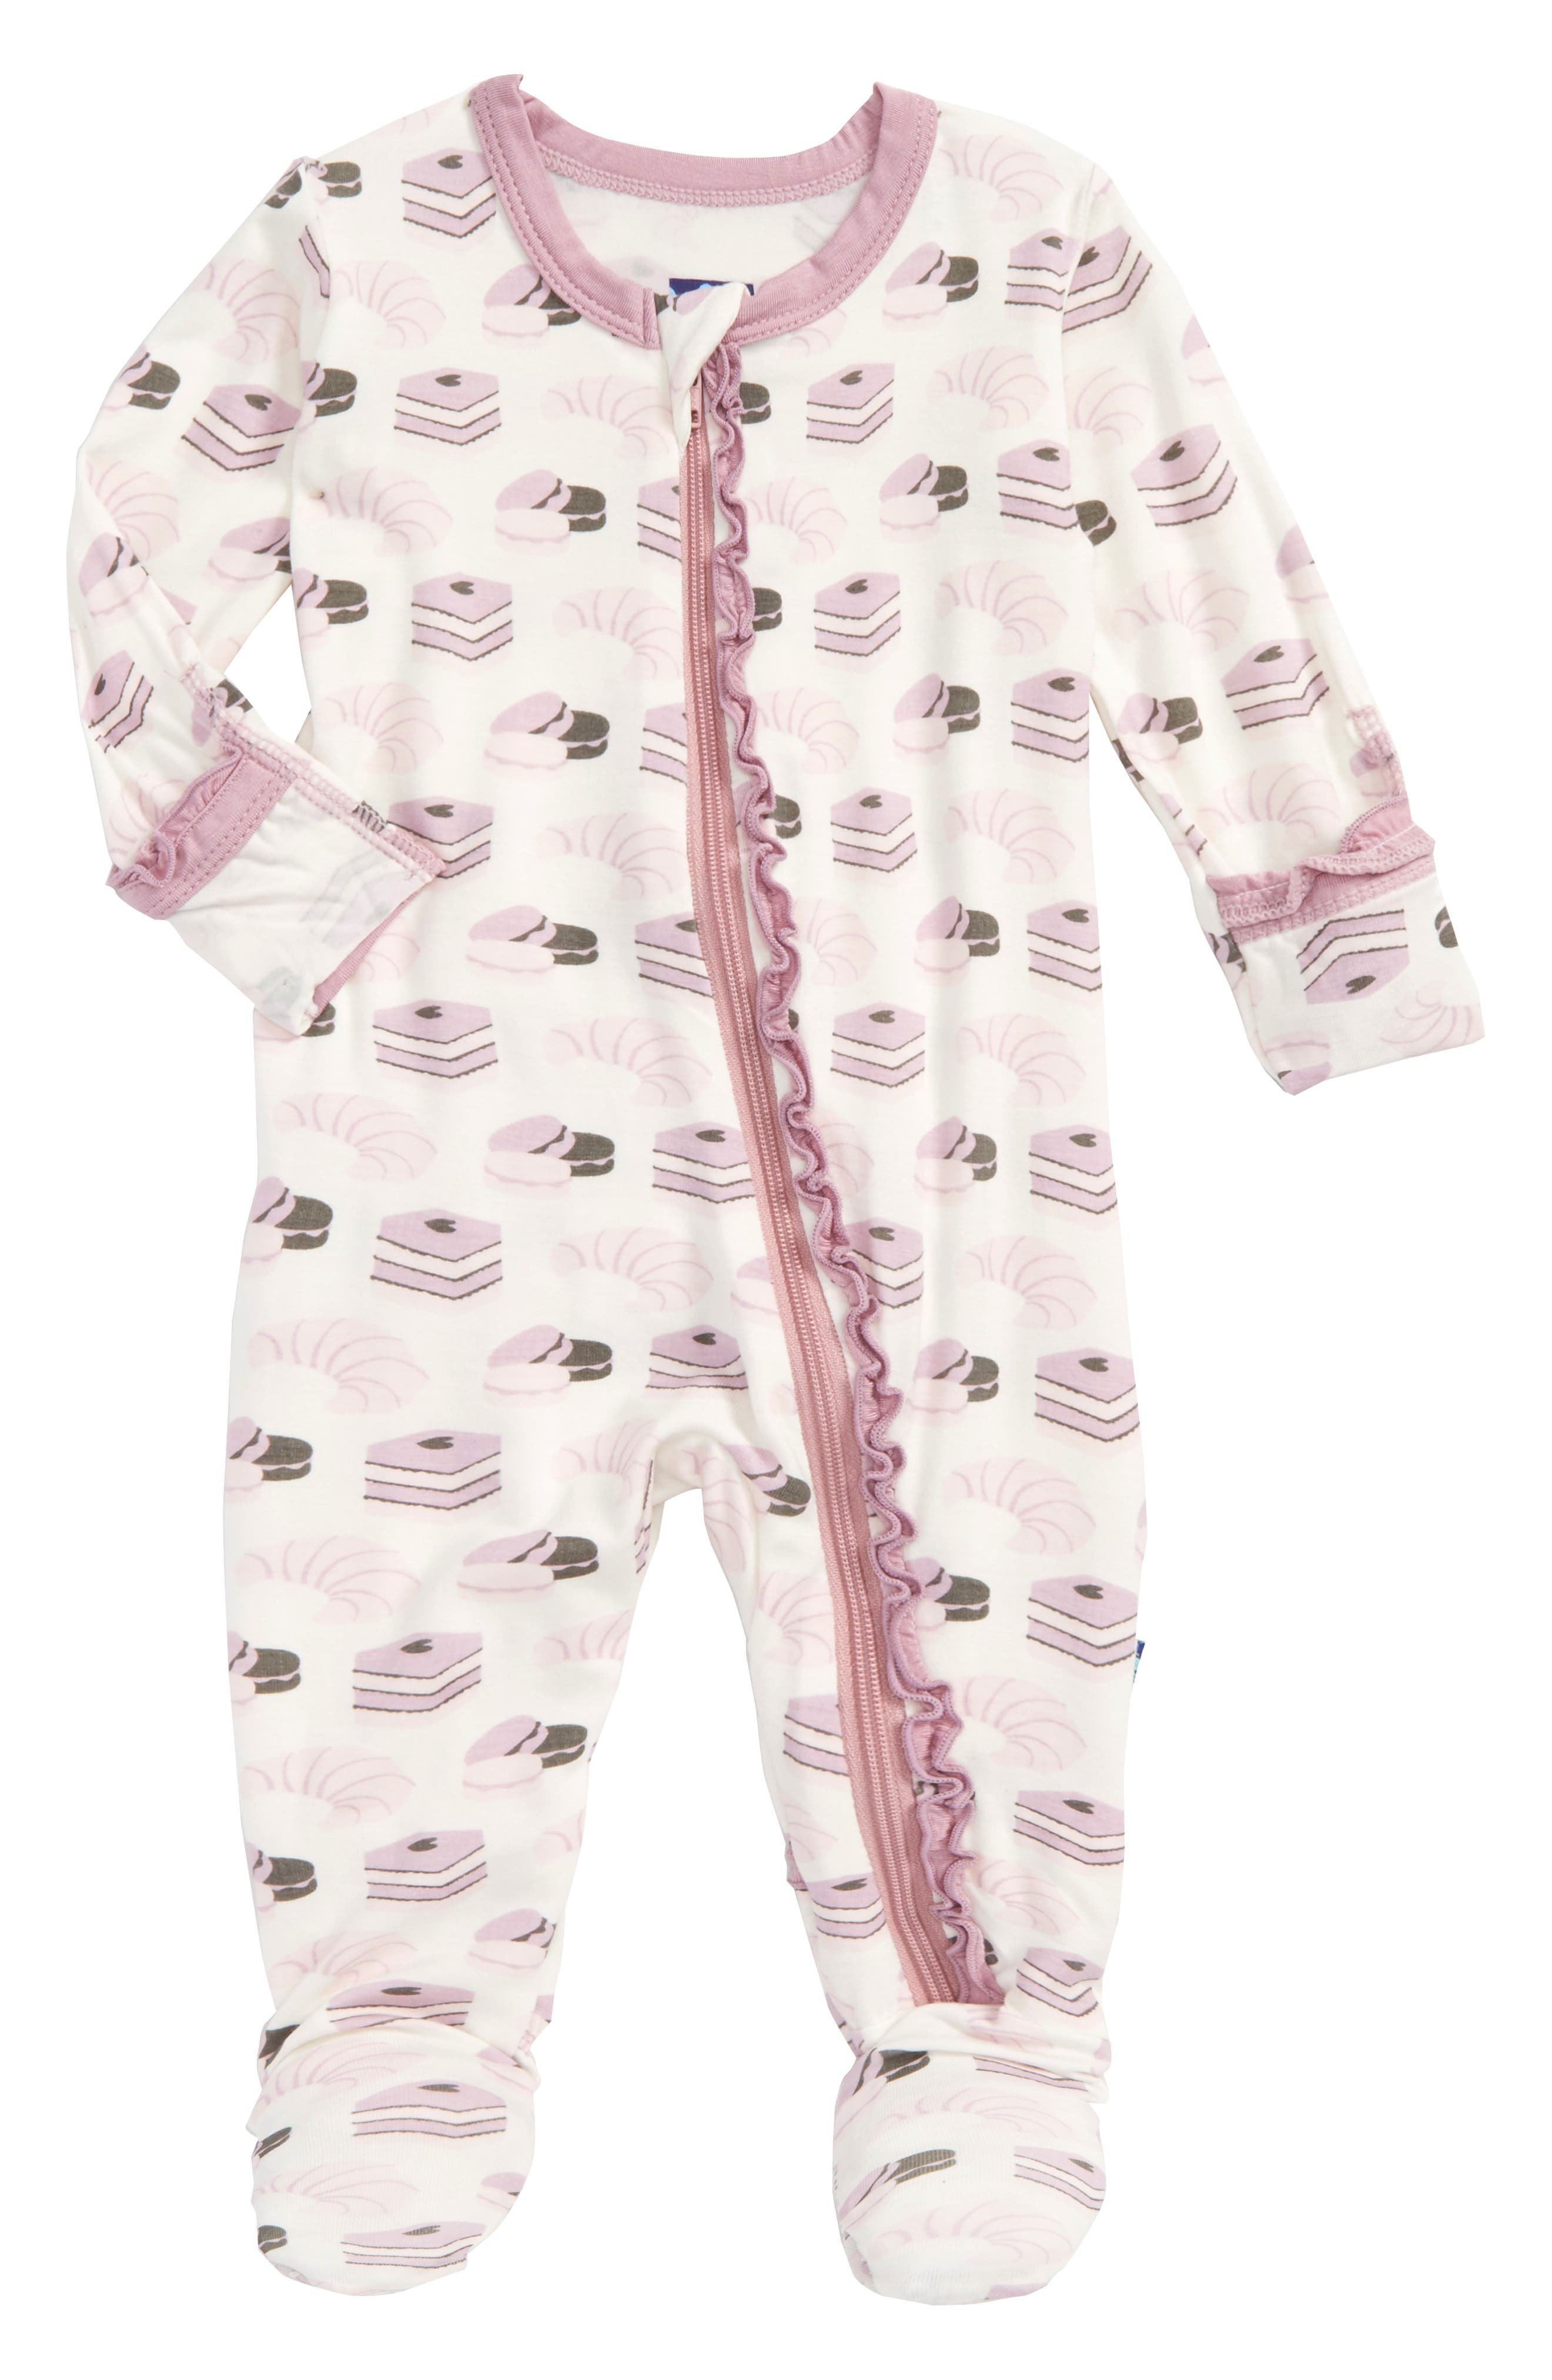 Print Fitted One-Piece Footie Pajamas,                             Main thumbnail 1, color,                             900